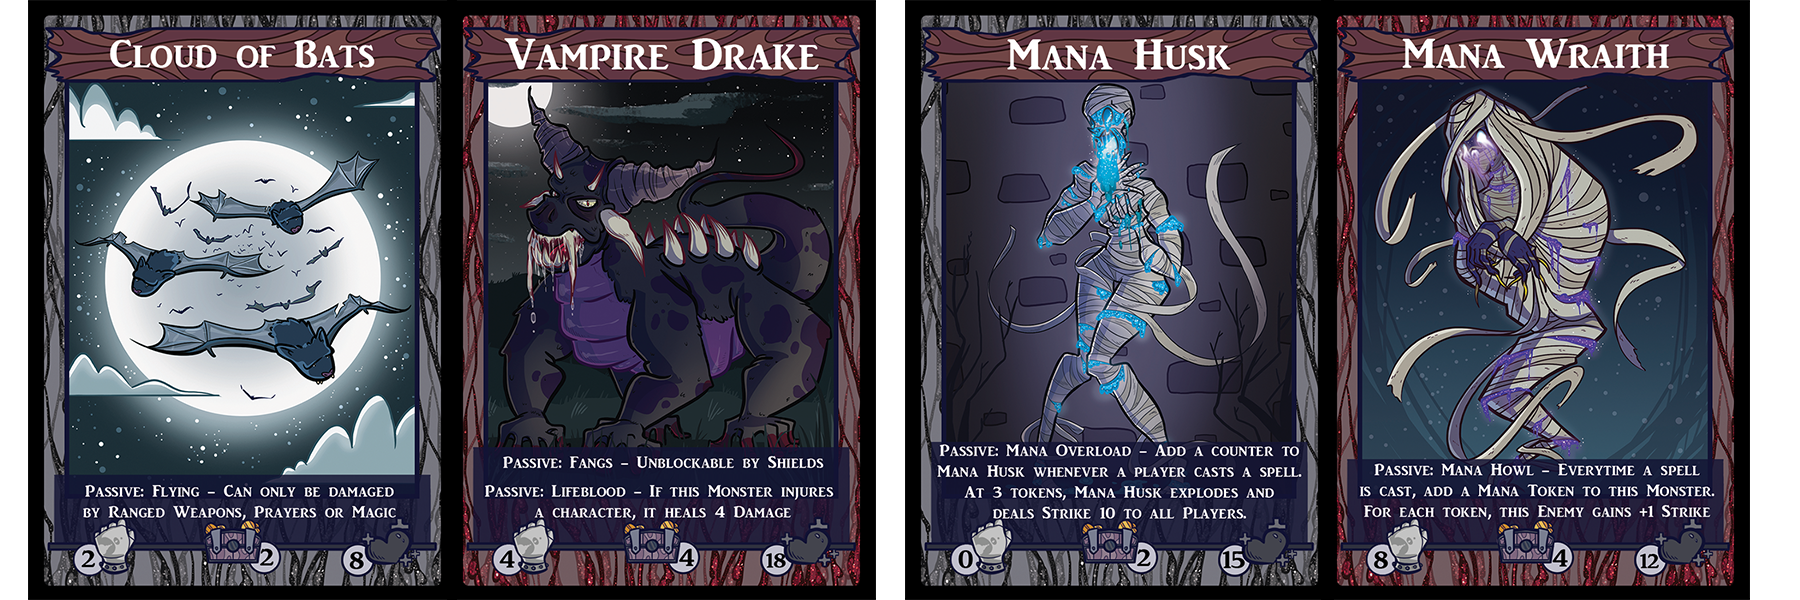 Cloud of Bats evolves into a Vampire Drake, a fearsome creature that can cut through shields like butter. A Mana Husk, an unstable remnant of a crystal-abusing mage, becomes a Mana Wraith; a vengeful spirit which grows stronger as players use magic.